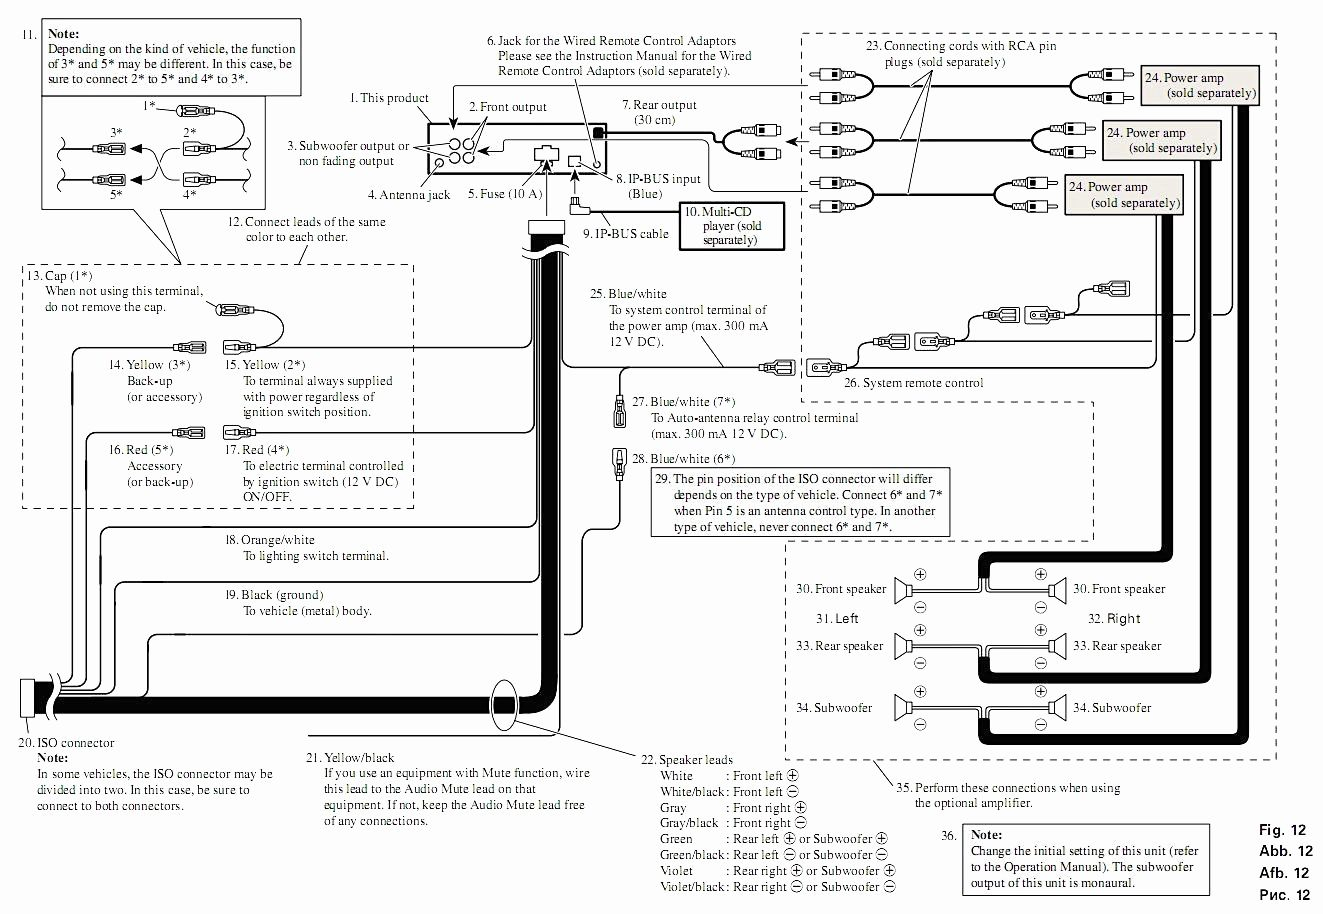 Wiring Diagram For Pioneer Deh 150Mp | Wiring Diagram - Pioneer Deh-150Mp Wiring Diagram